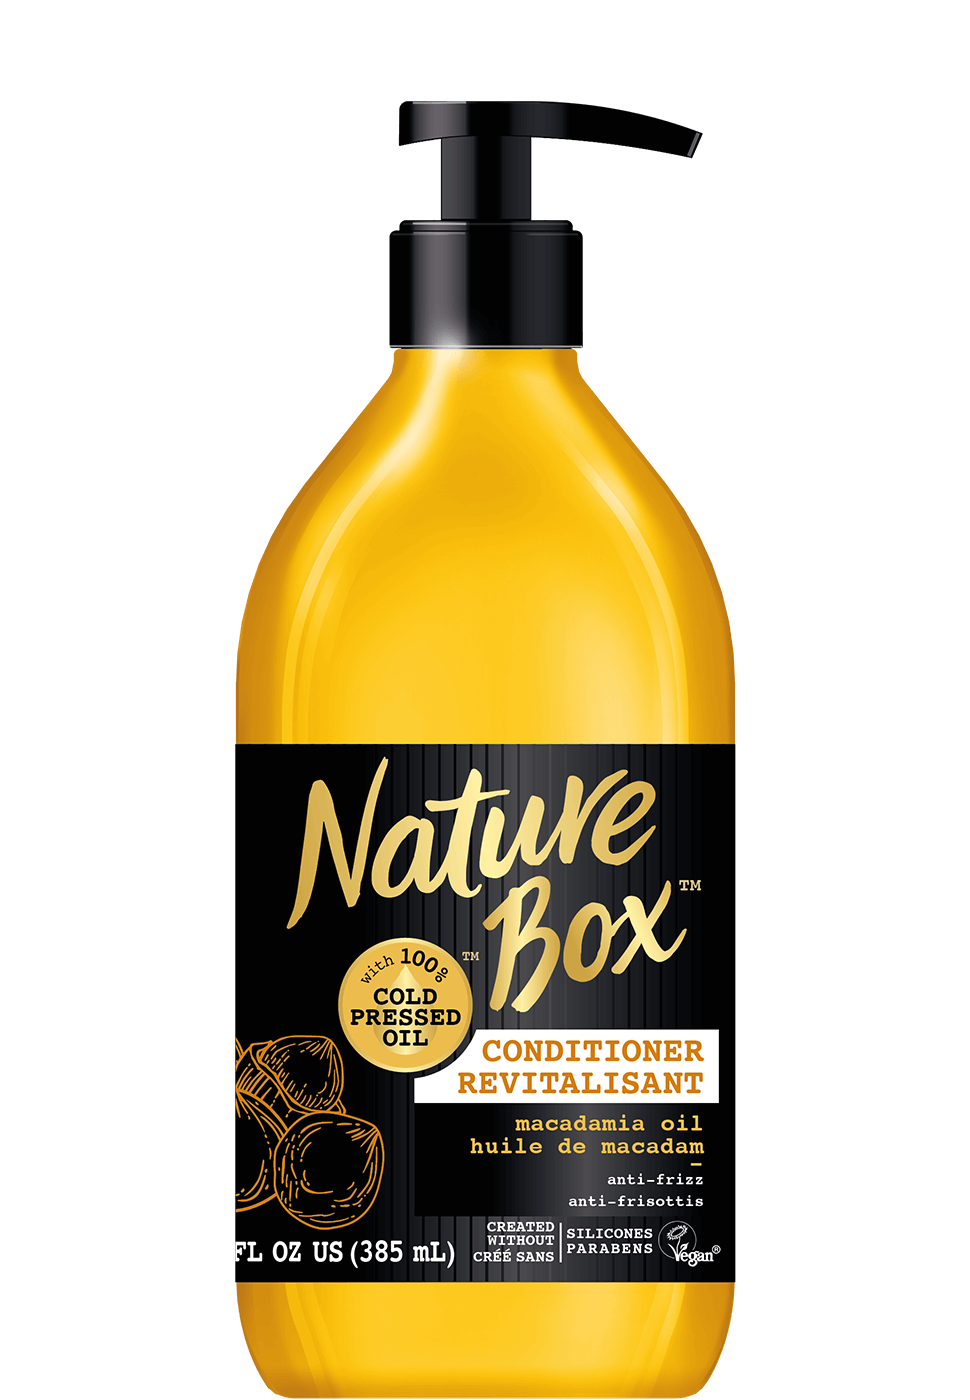 naturebox_us_macadamia_conditioner_970x1400